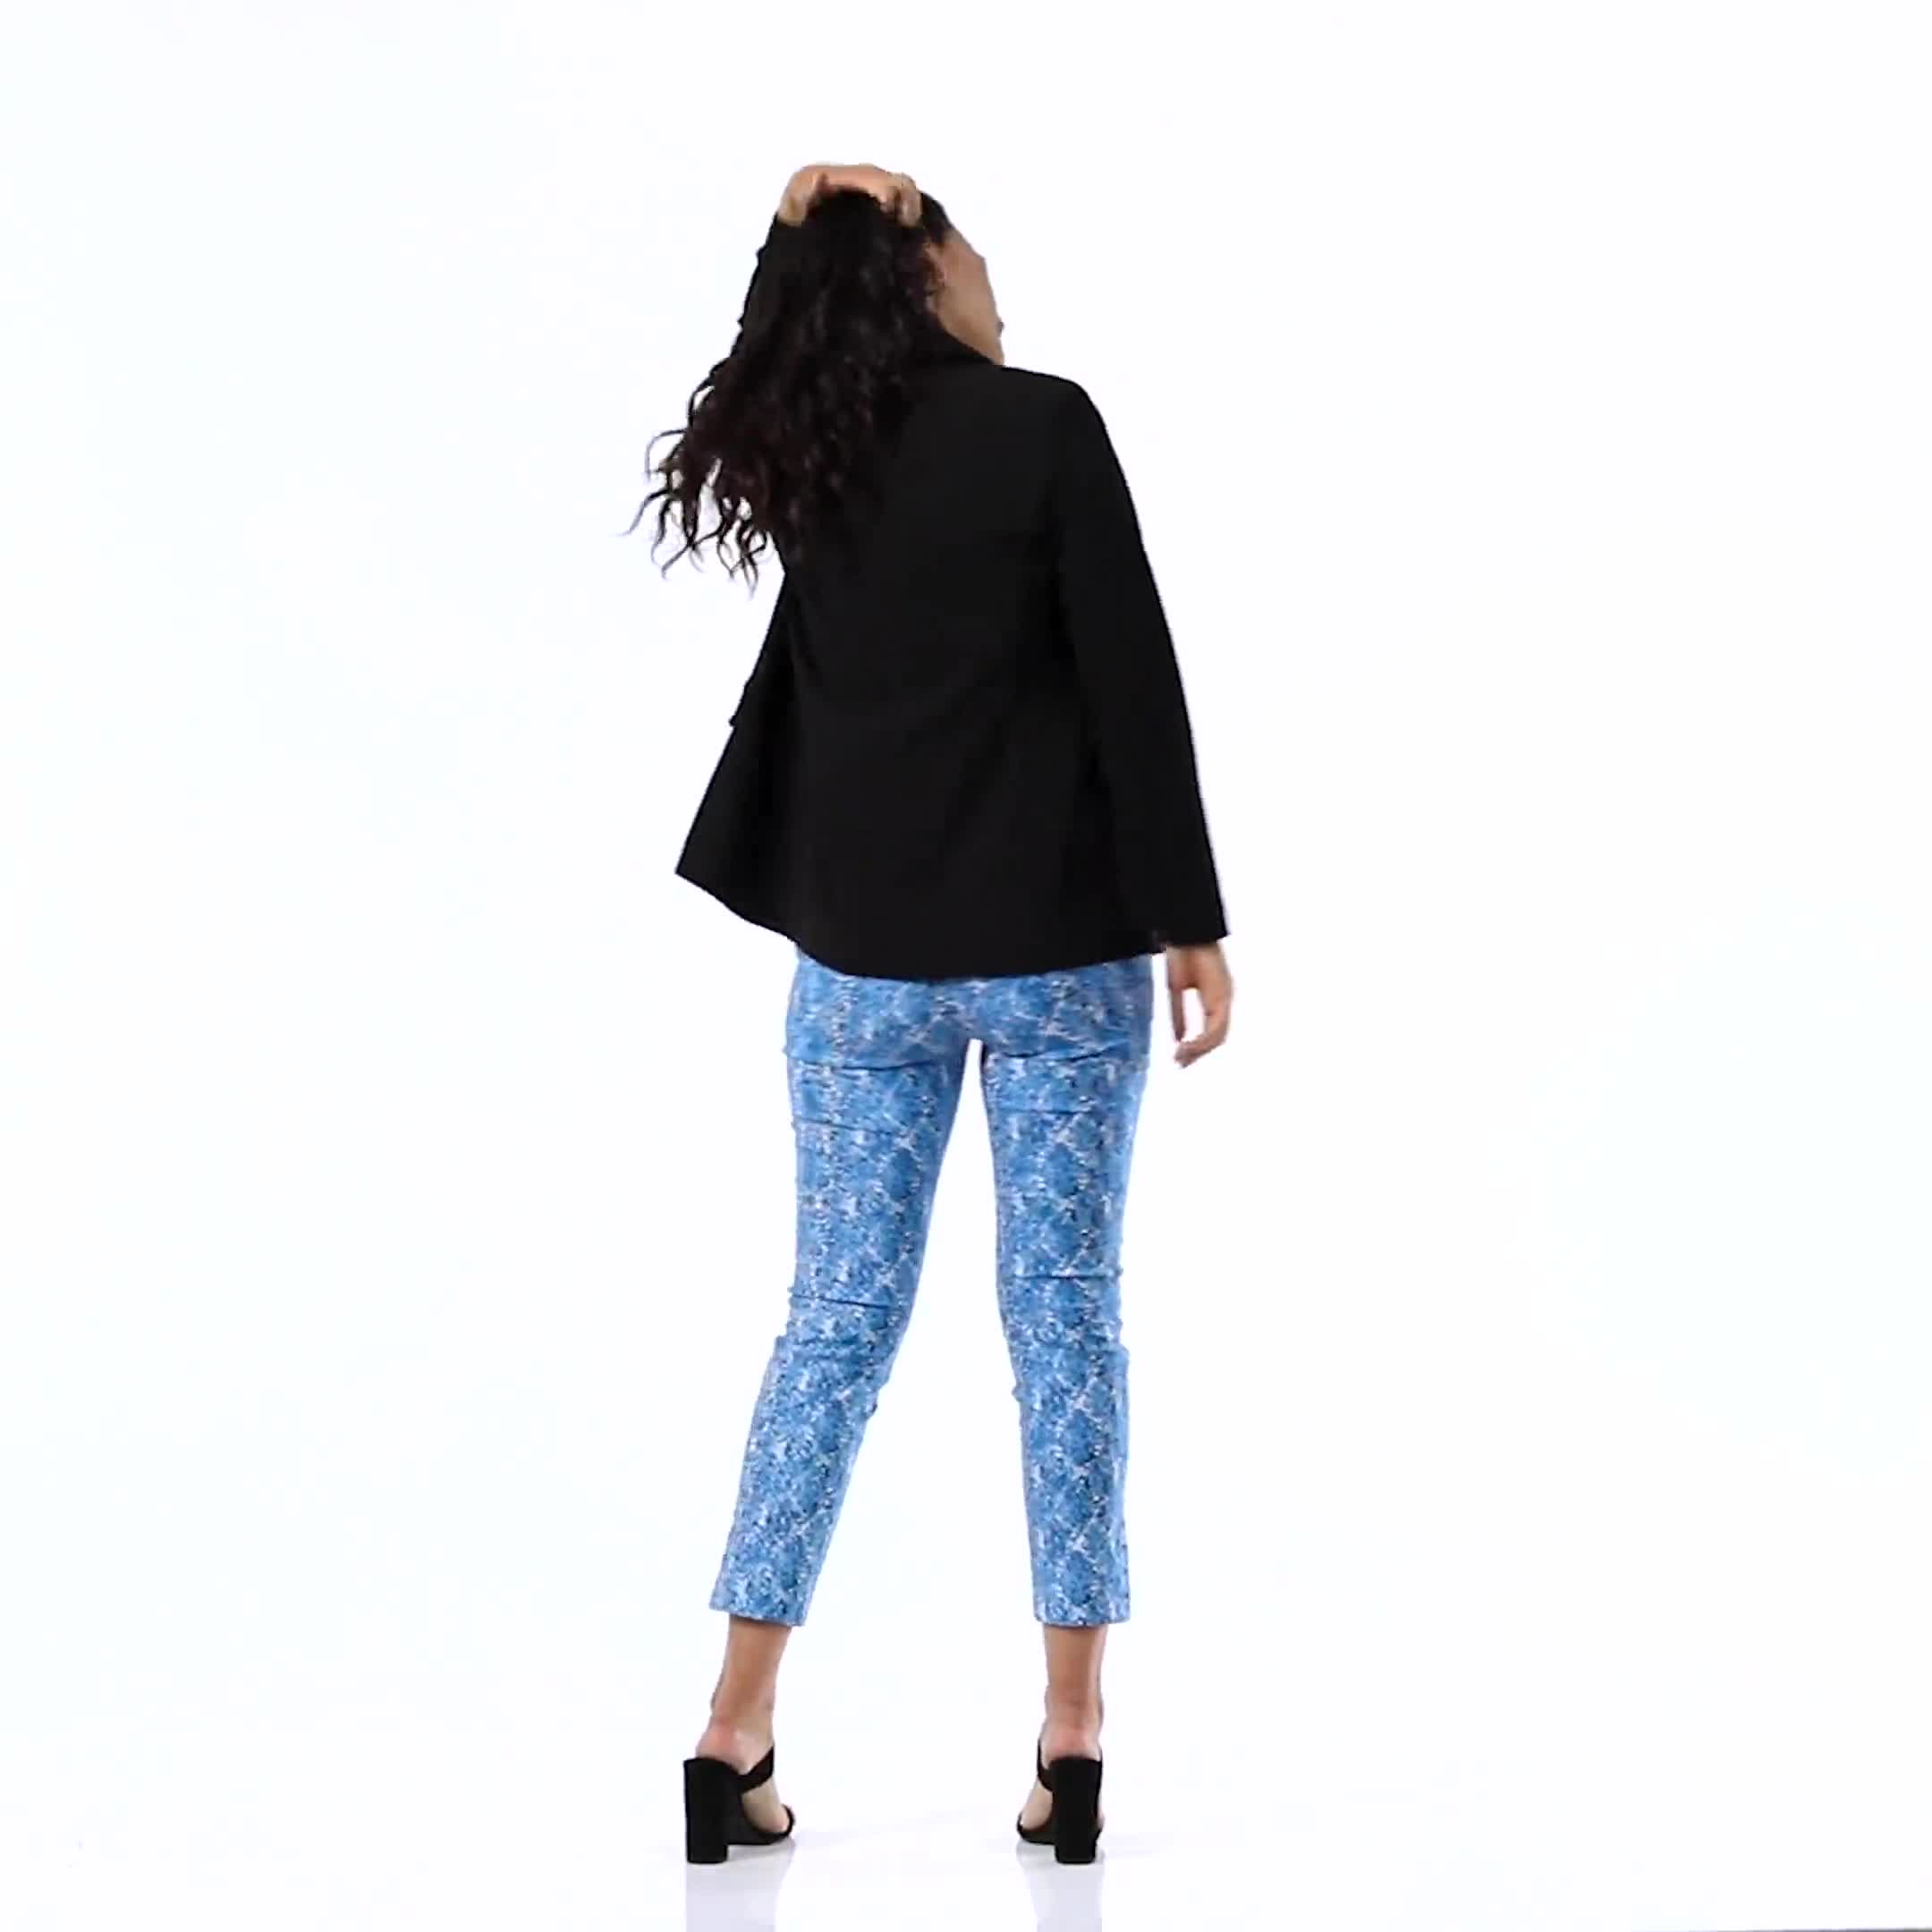 Printed  Superstretch Pull On Pants - Video